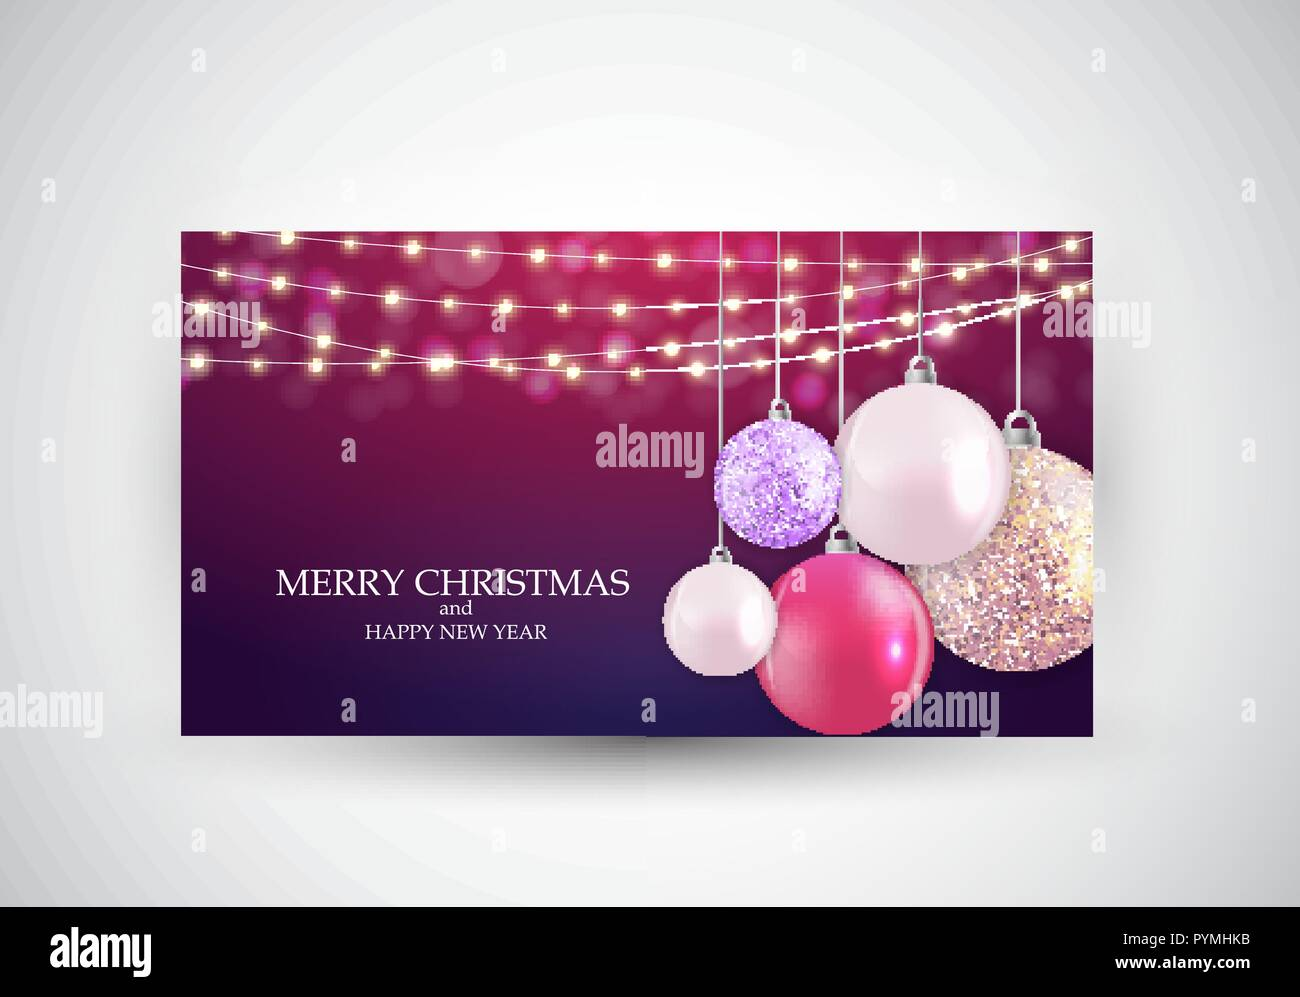 Merry Christmas Card Template Vector Illustration Stock Vector Art